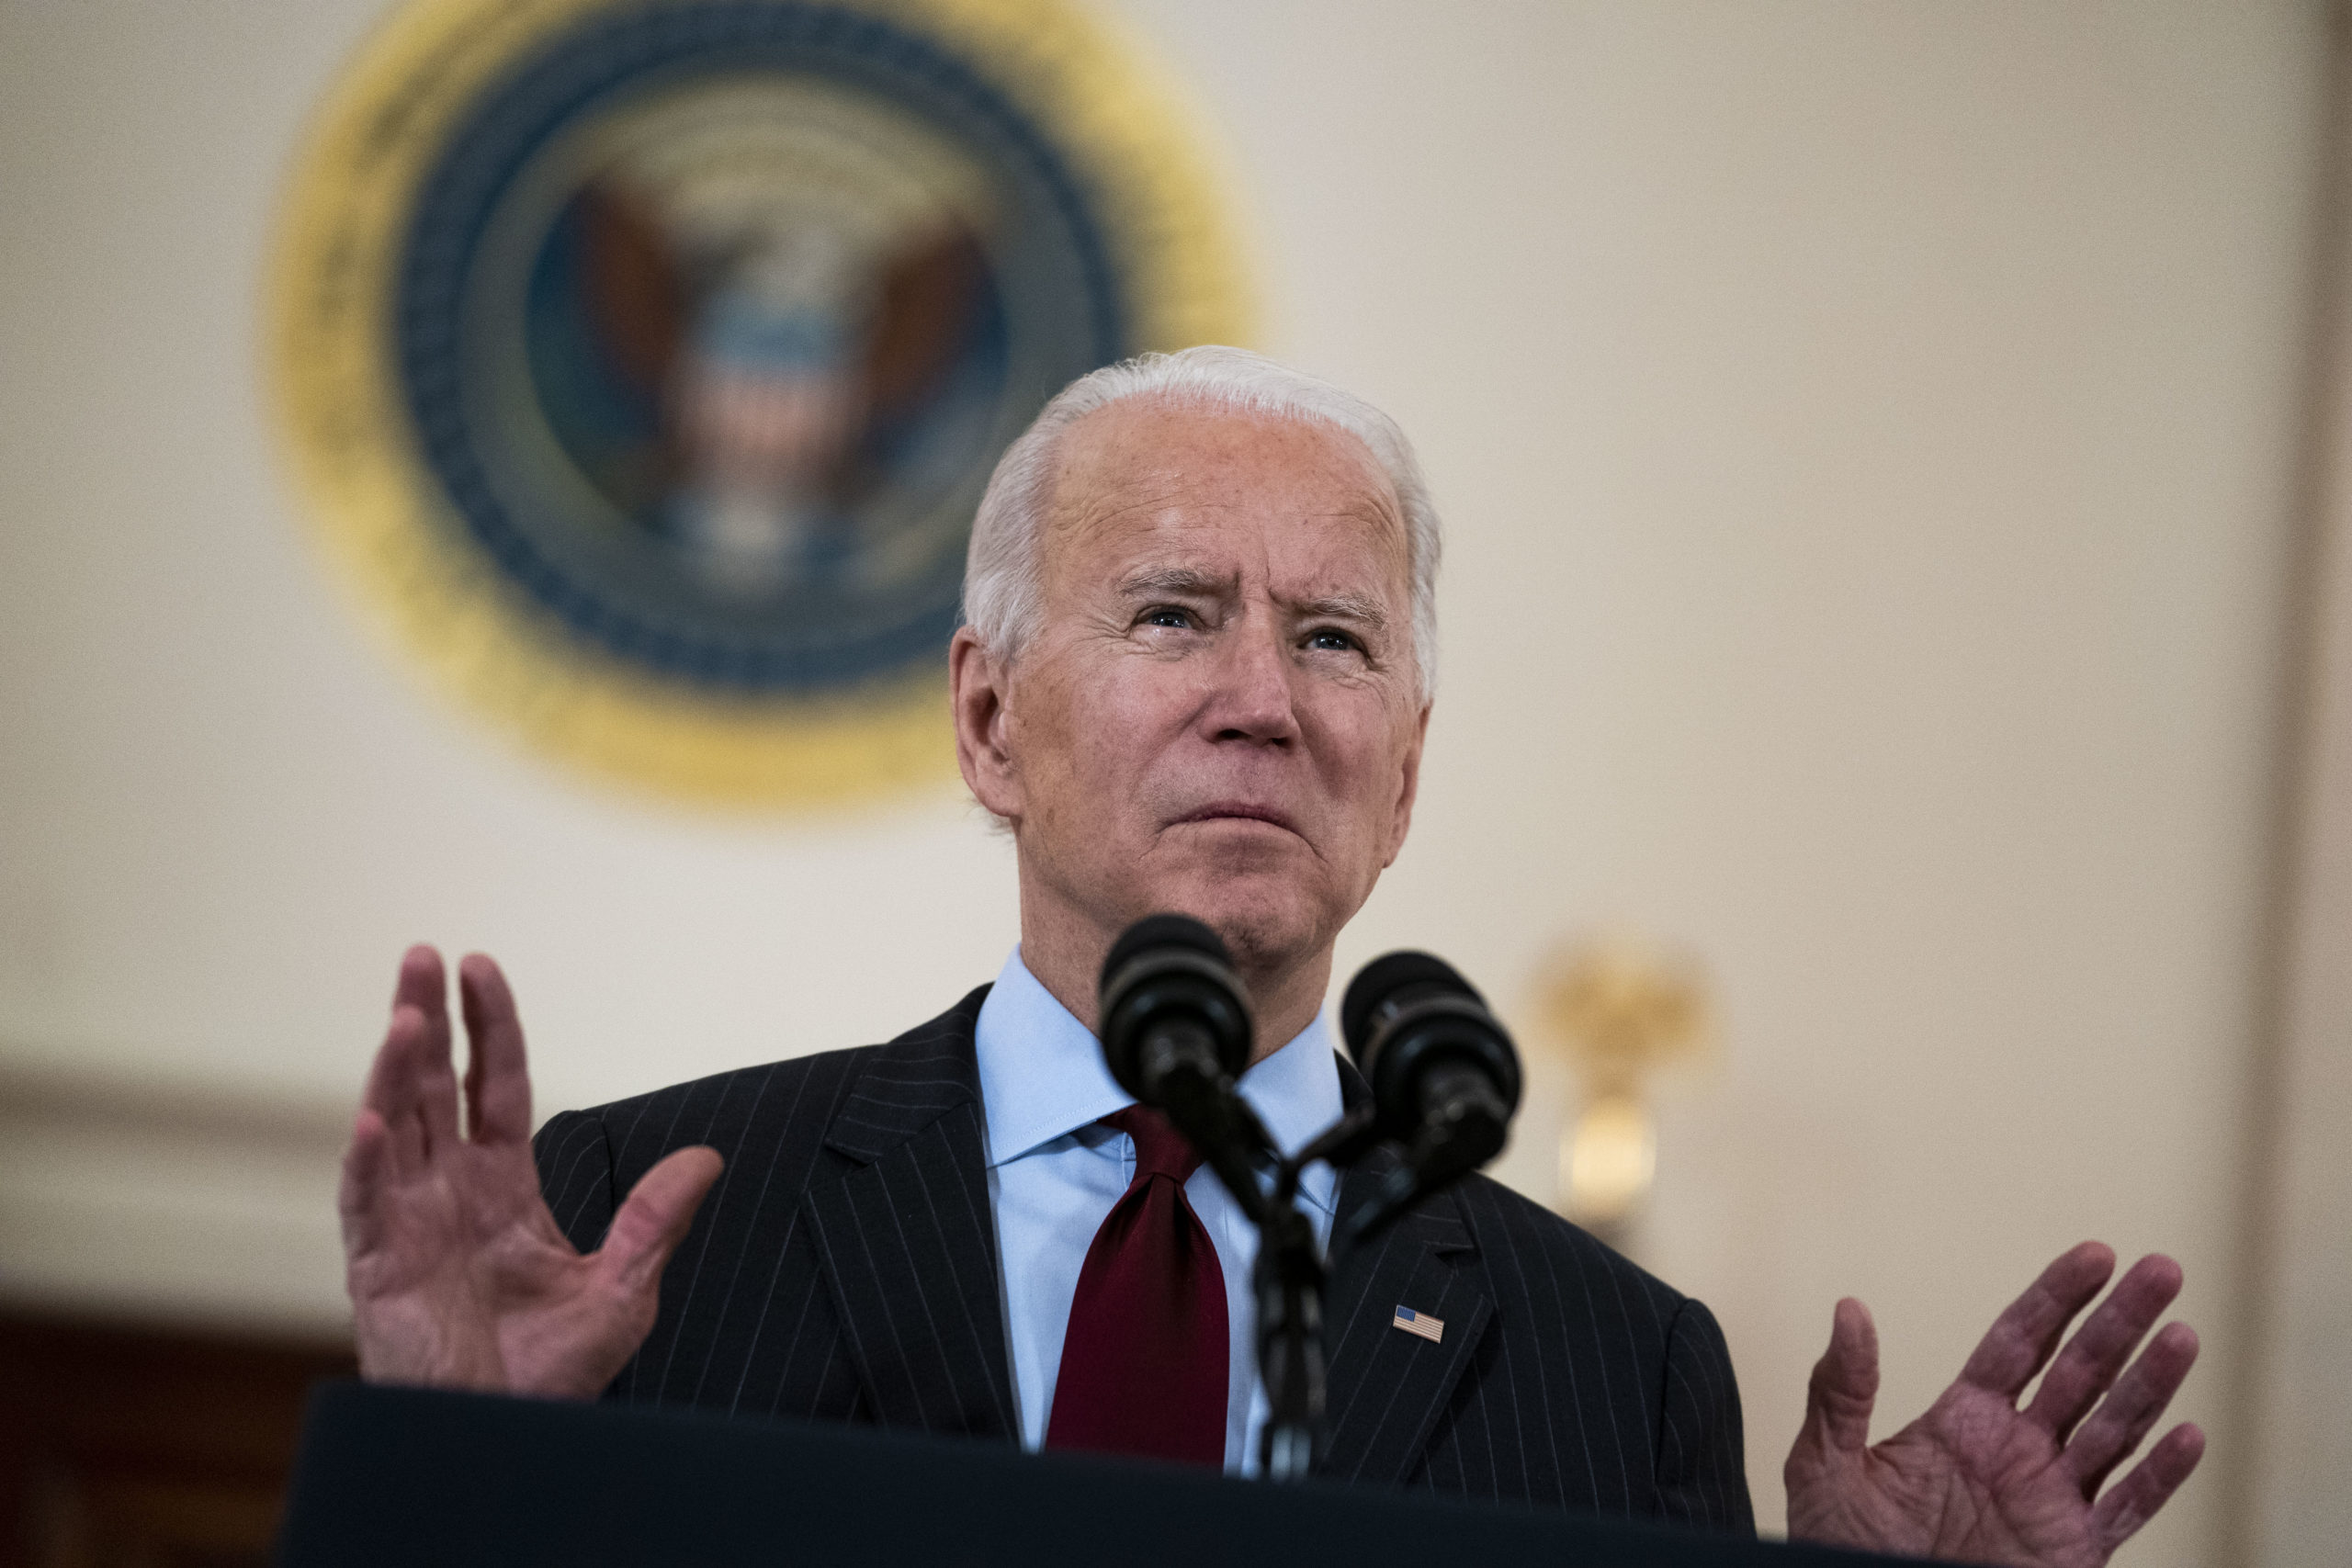 WASHINGTON, DC - FEBRUARY 22: U.S. President Joe Biden delivers remarks on the more than 500,000 lives lost to COVID-19 in the Cross Hall of the White House February 22, 2021 in Washington, DC. Also on hand for the ceremony were first lady Jill Biden, Vice President Kamala Harris and husband Doug Emhoff. (Photo by Doug Mills-Pool/Getty Images)